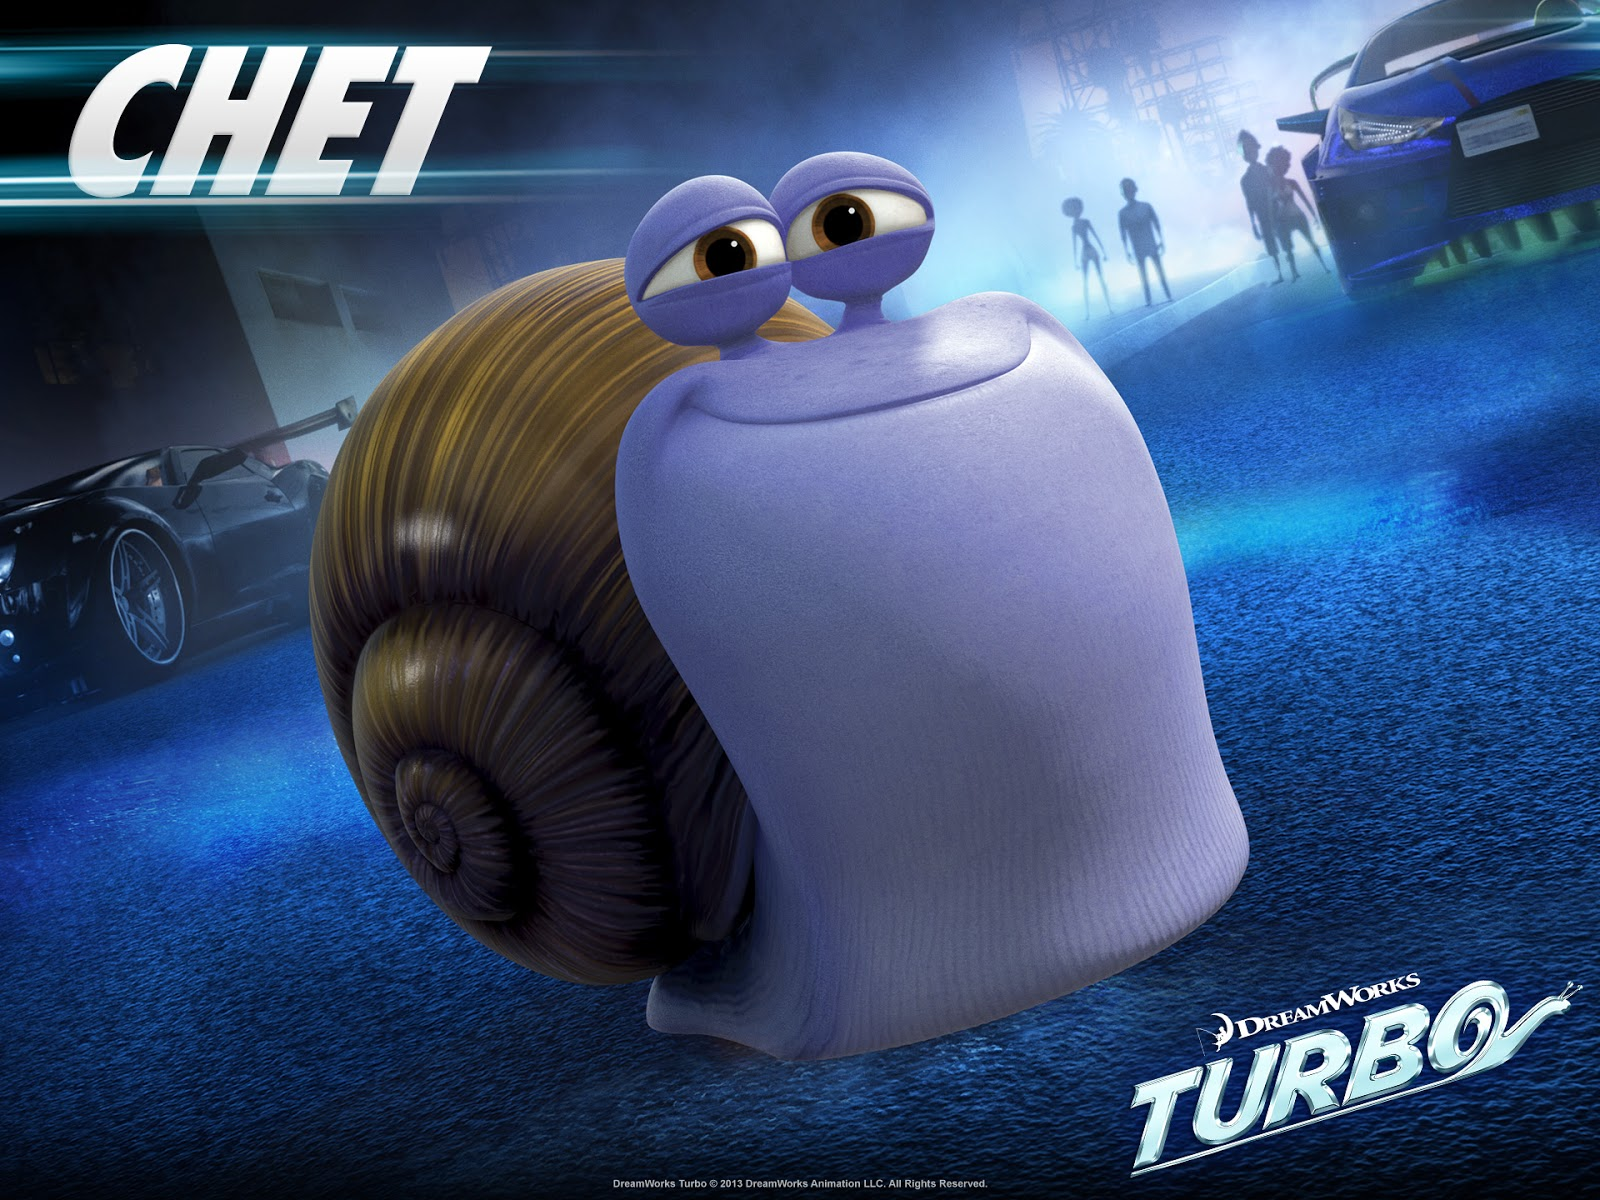 Turbo Movie 2013 Poster Turbo movie character burn